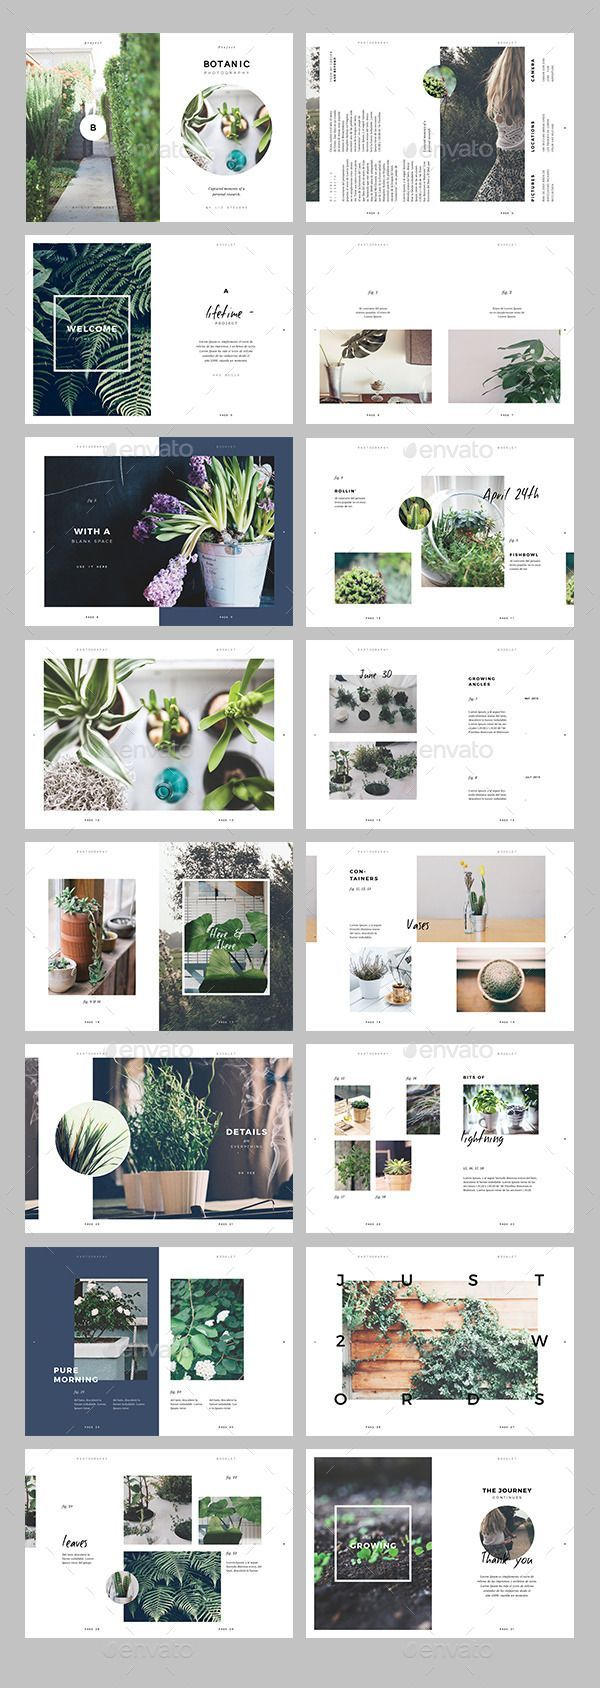 Layouts / Photos